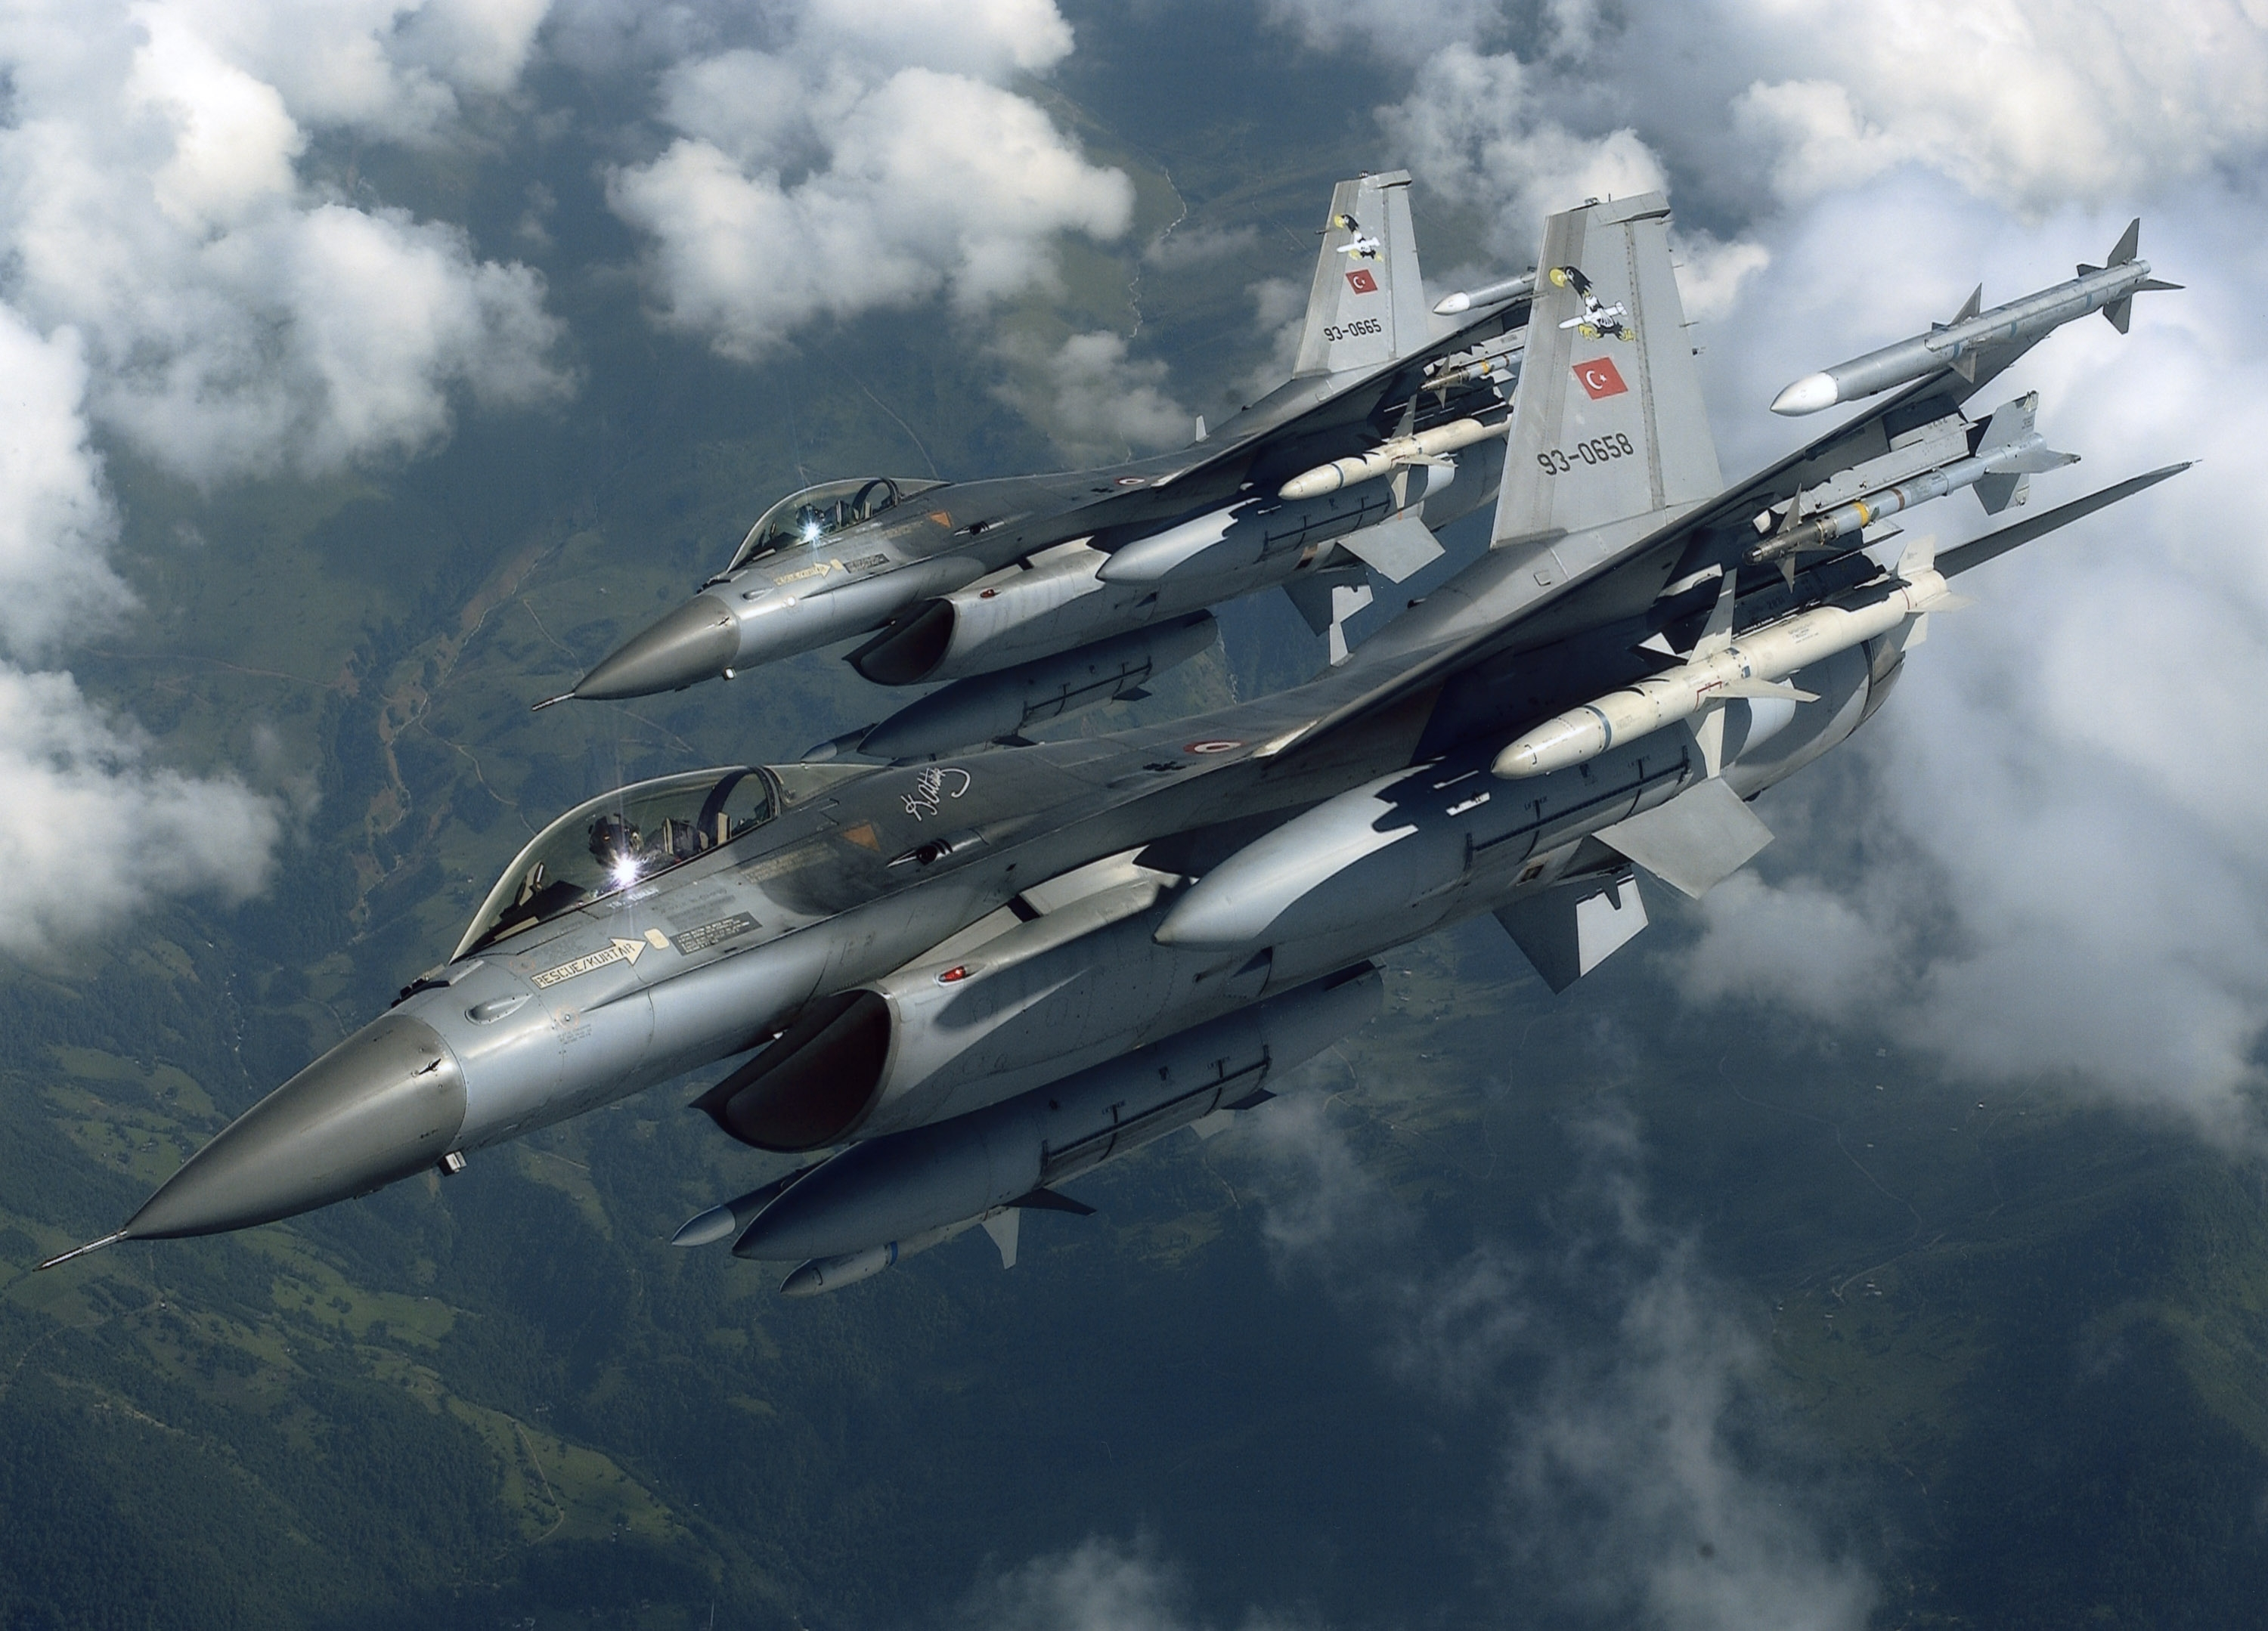 1799 jet fighters hd wallpapers   background images - wallpaper abyss